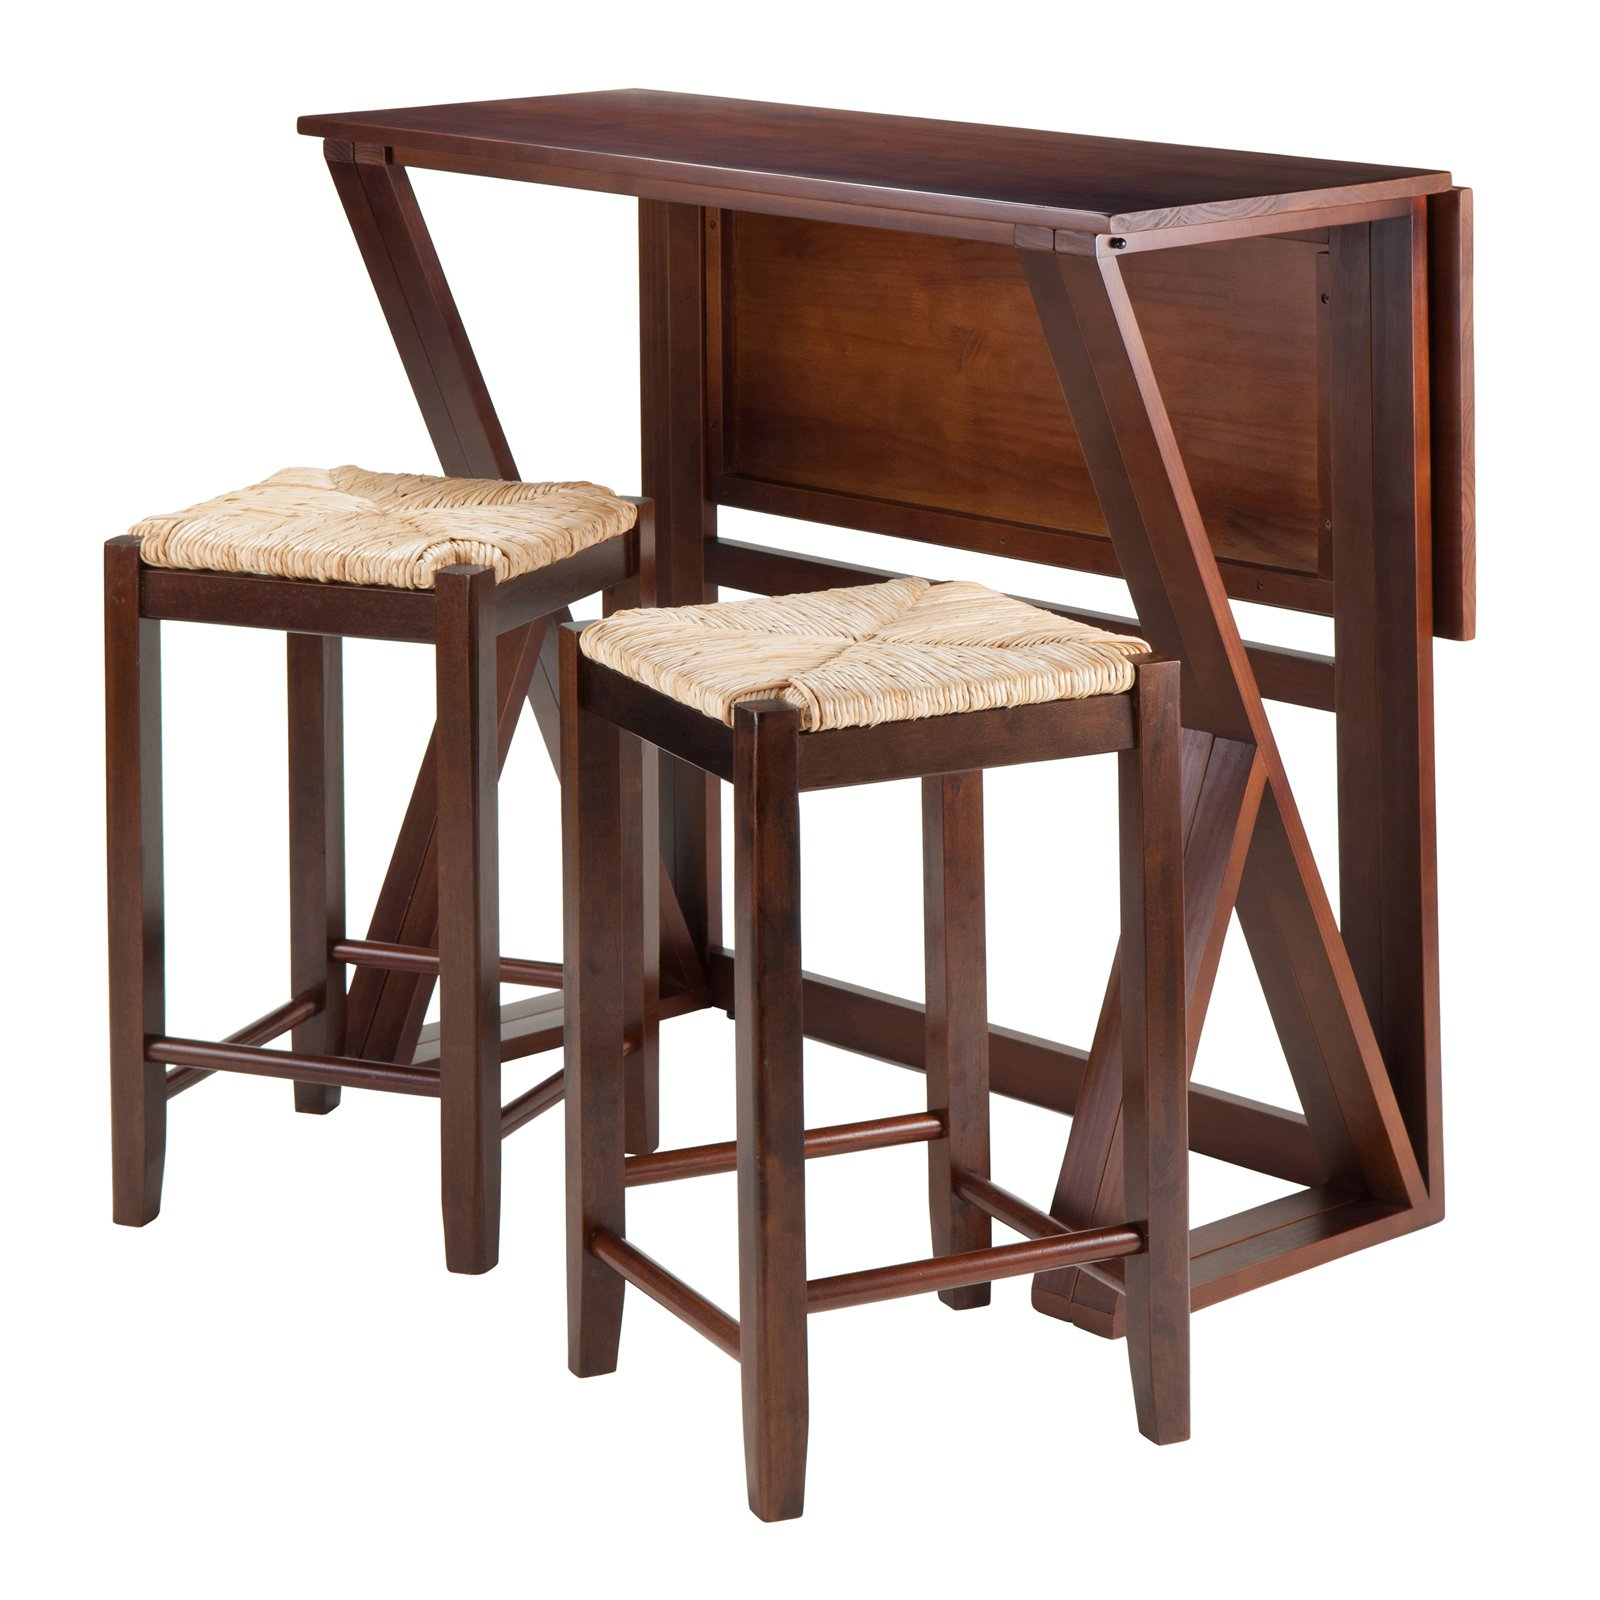 winsome trading harrington piece counter height dining table set master wood accent walnut with rush seat stools home goods website contemporary decor nautical reclaimed trestle